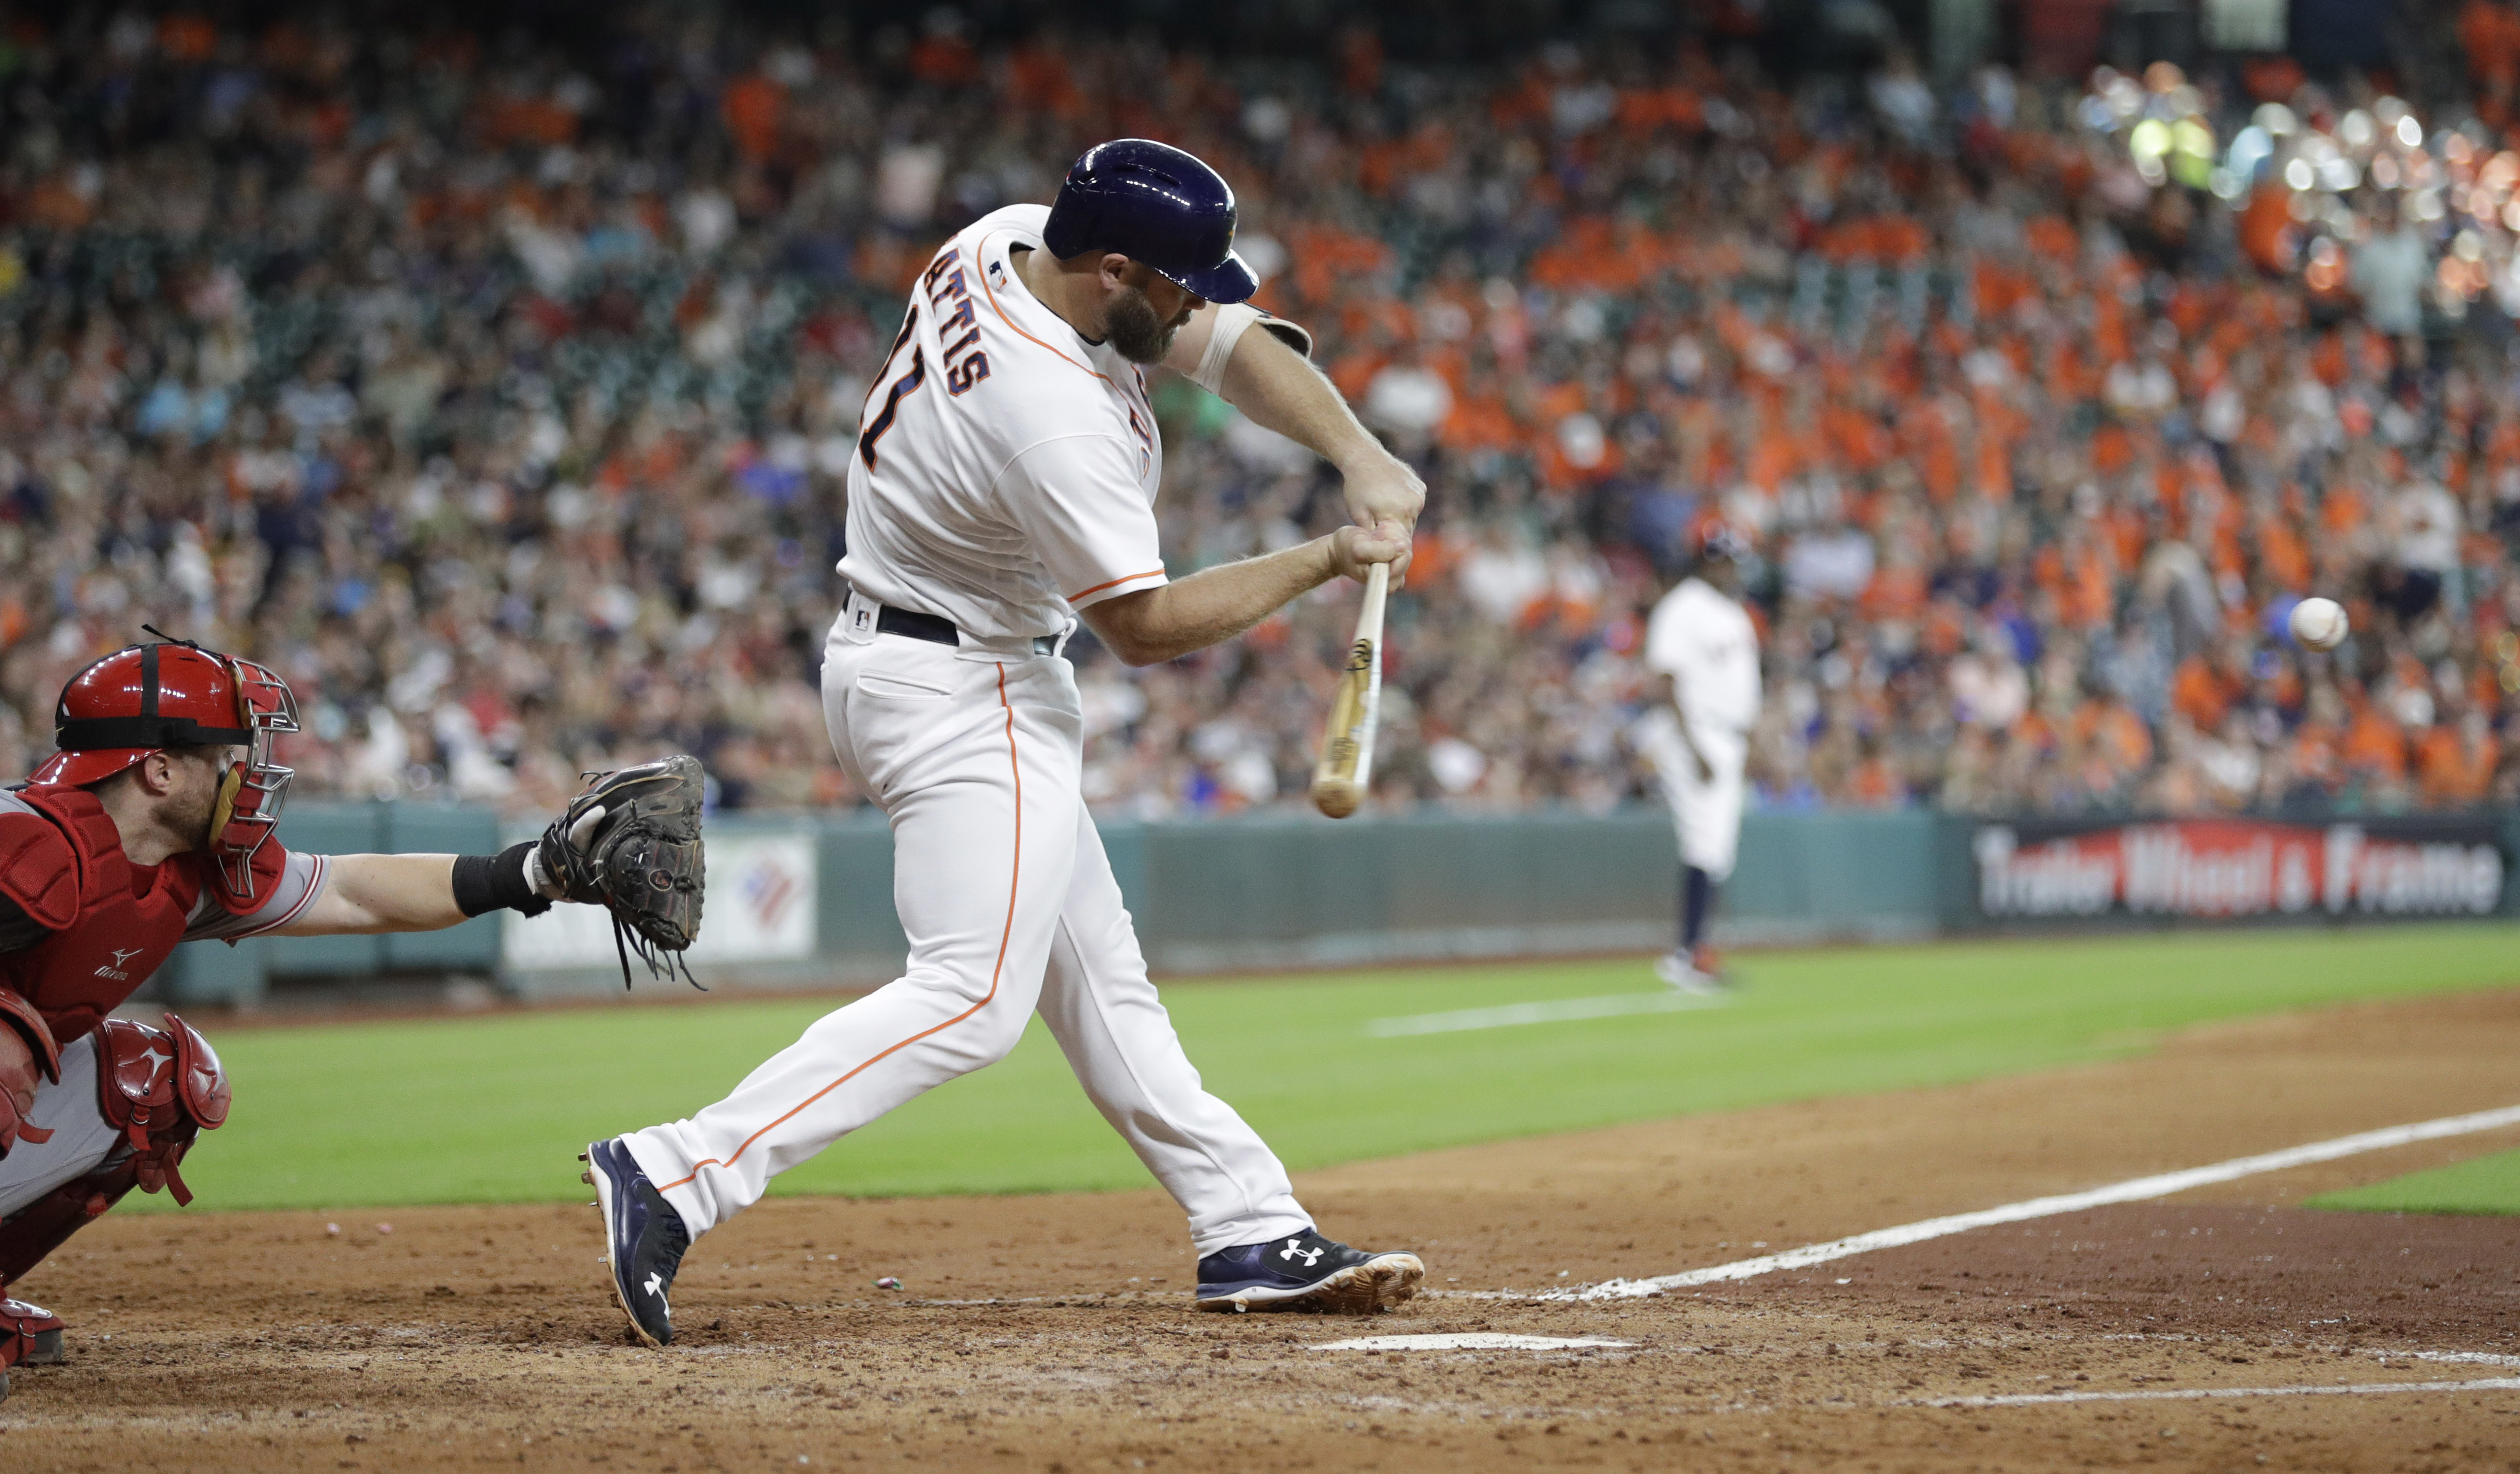 Houston Astros' Evan Gattis (11) swings to hit a two-run home run as Cincinnati Reds catcher Tucker Barnhart, left, reaches for the pitch during the seventh inning of a baseball game Saturday, June 18, 2016, in Houston. (AP Photo/David J. Phillip)